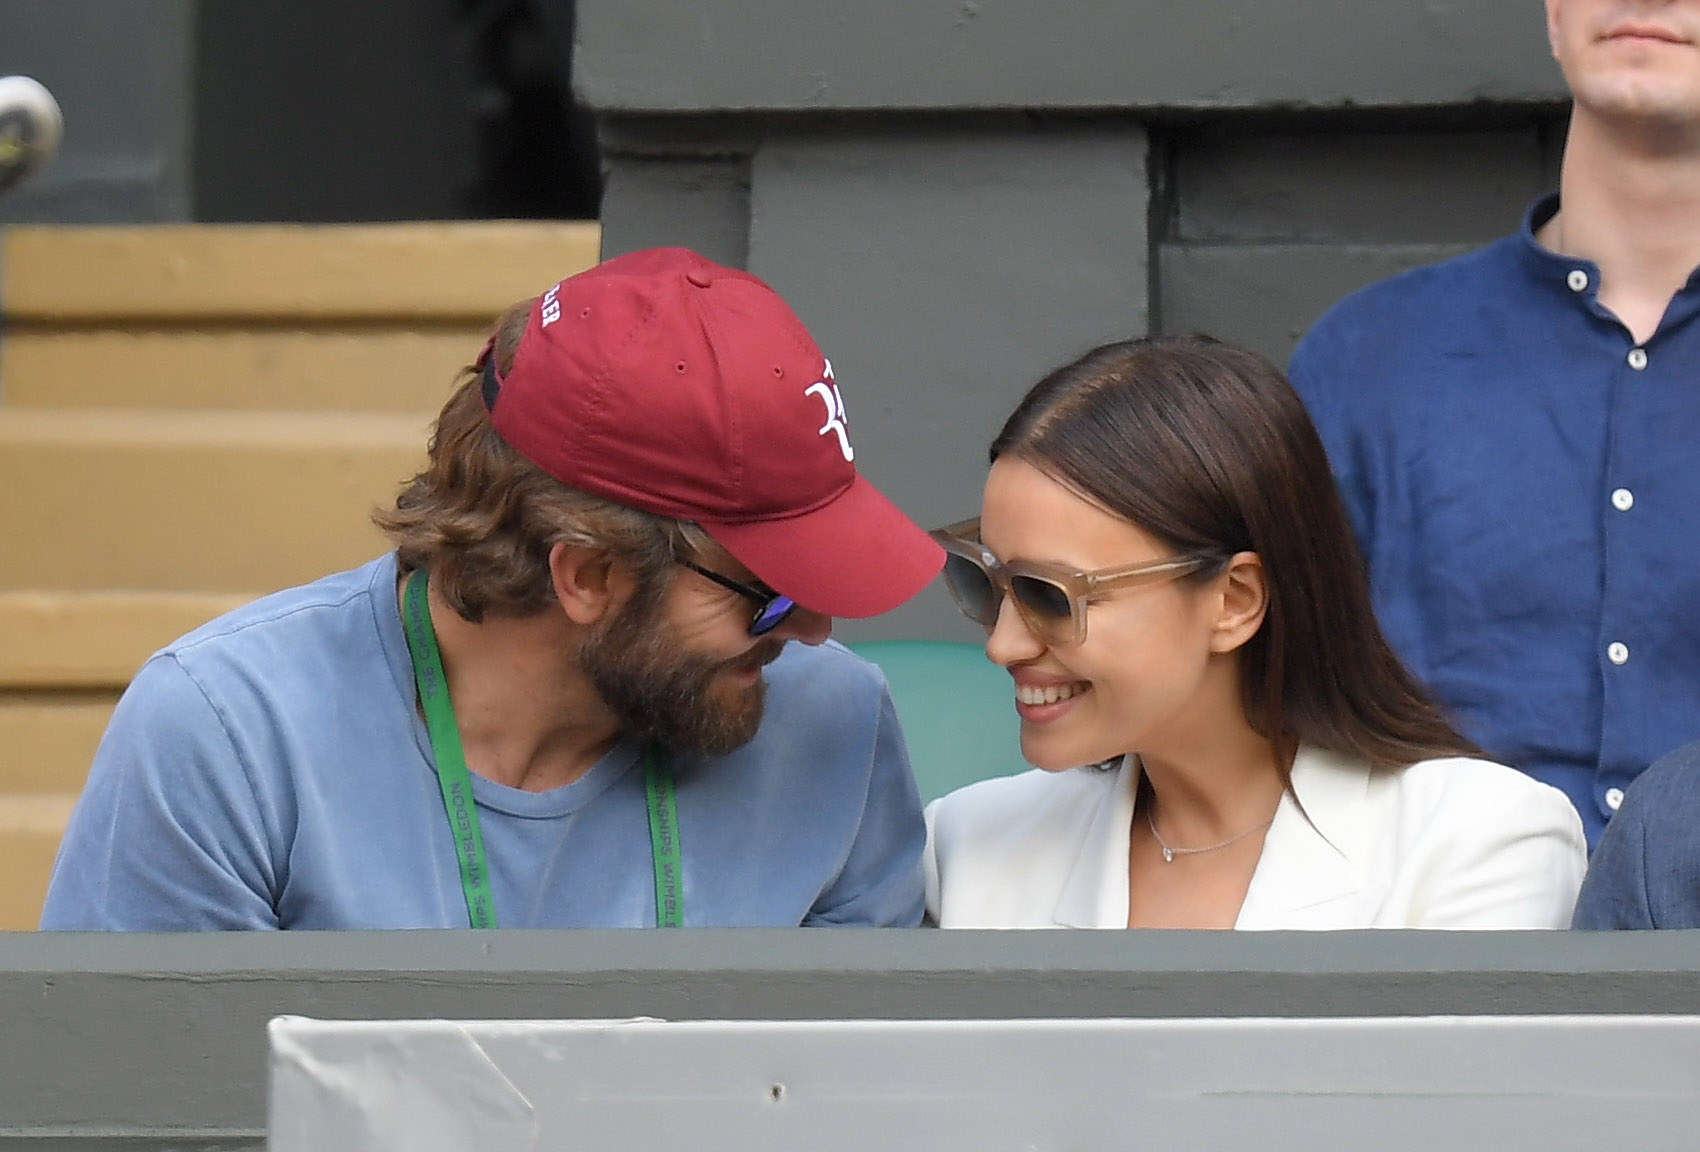 Bradley Cooper and Irina Shayk at a Wimbledon tennis game